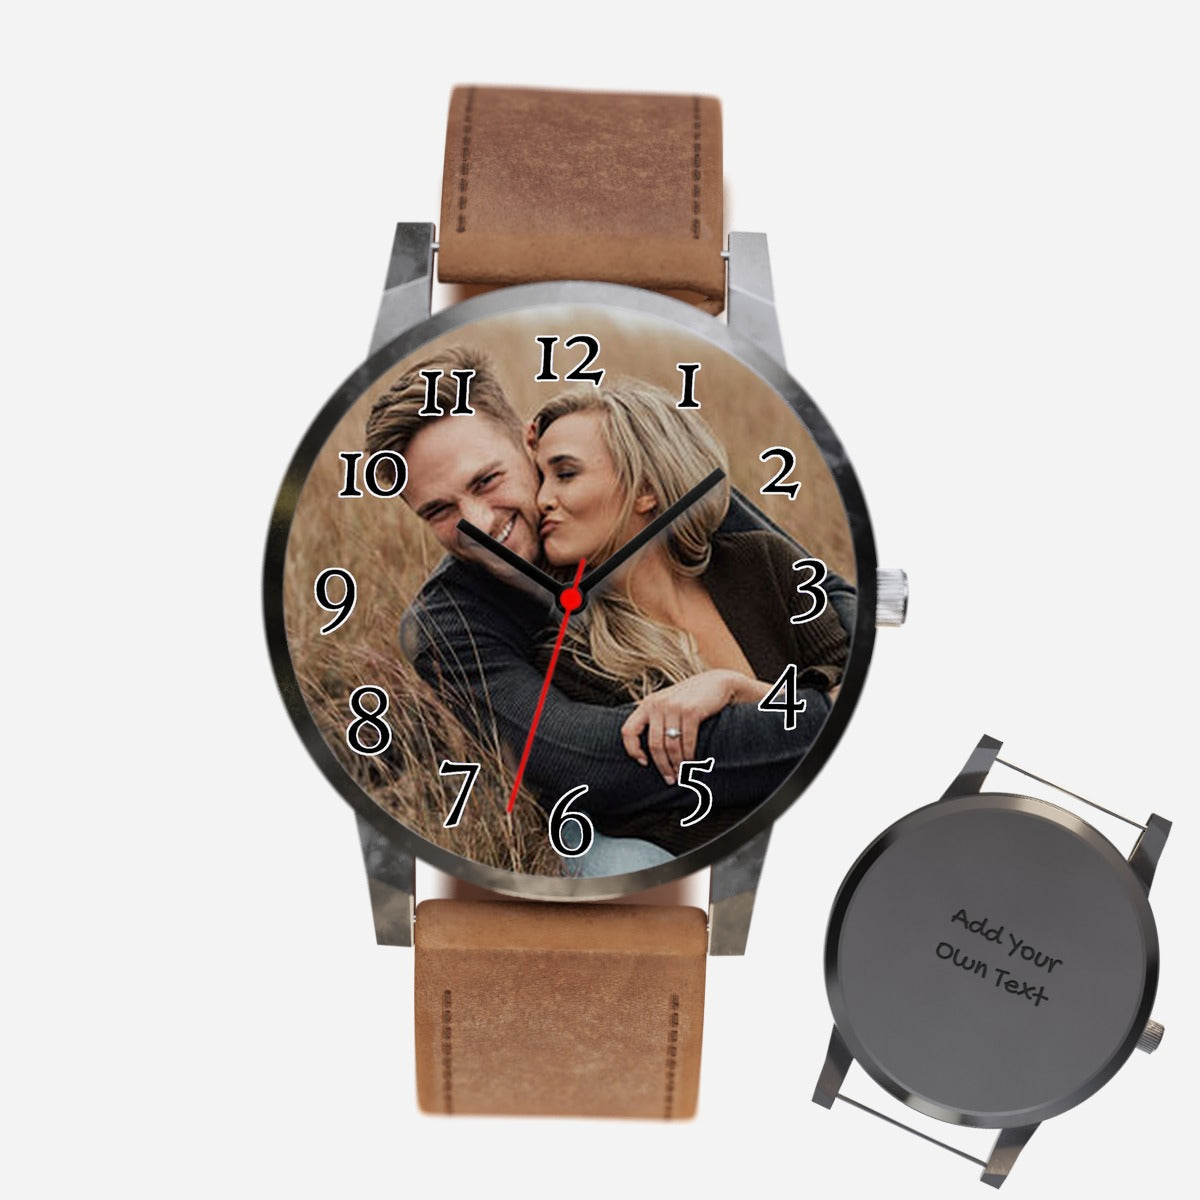 Personalized Happy Watch Gift